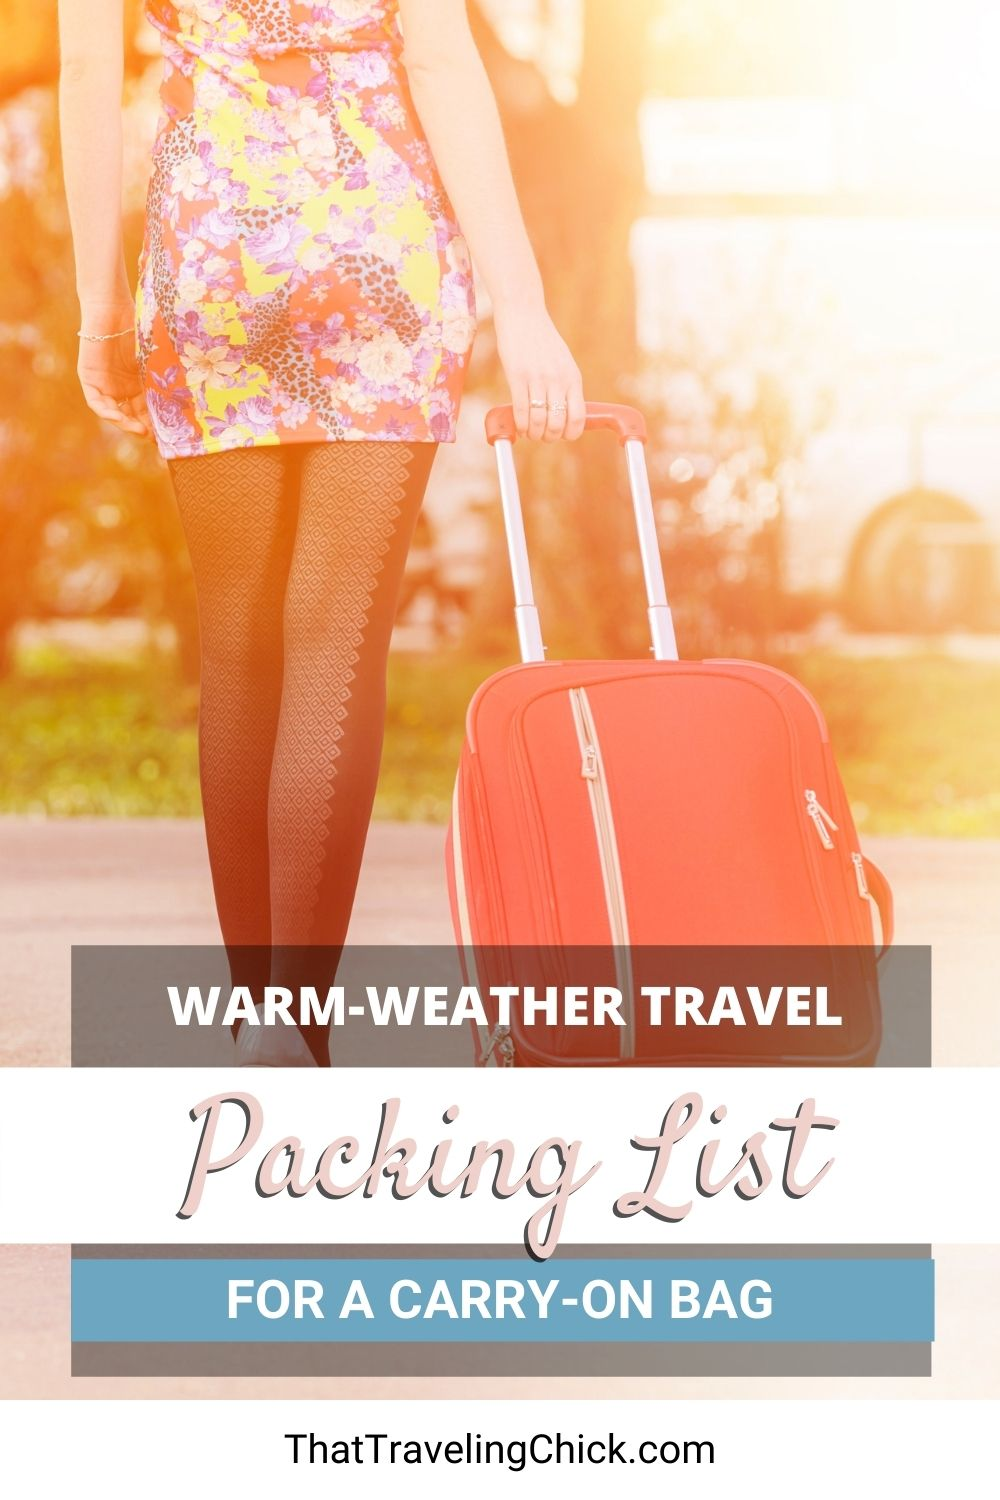 Warm Weather Travel Packing List #packinglist #carryonepackinglist